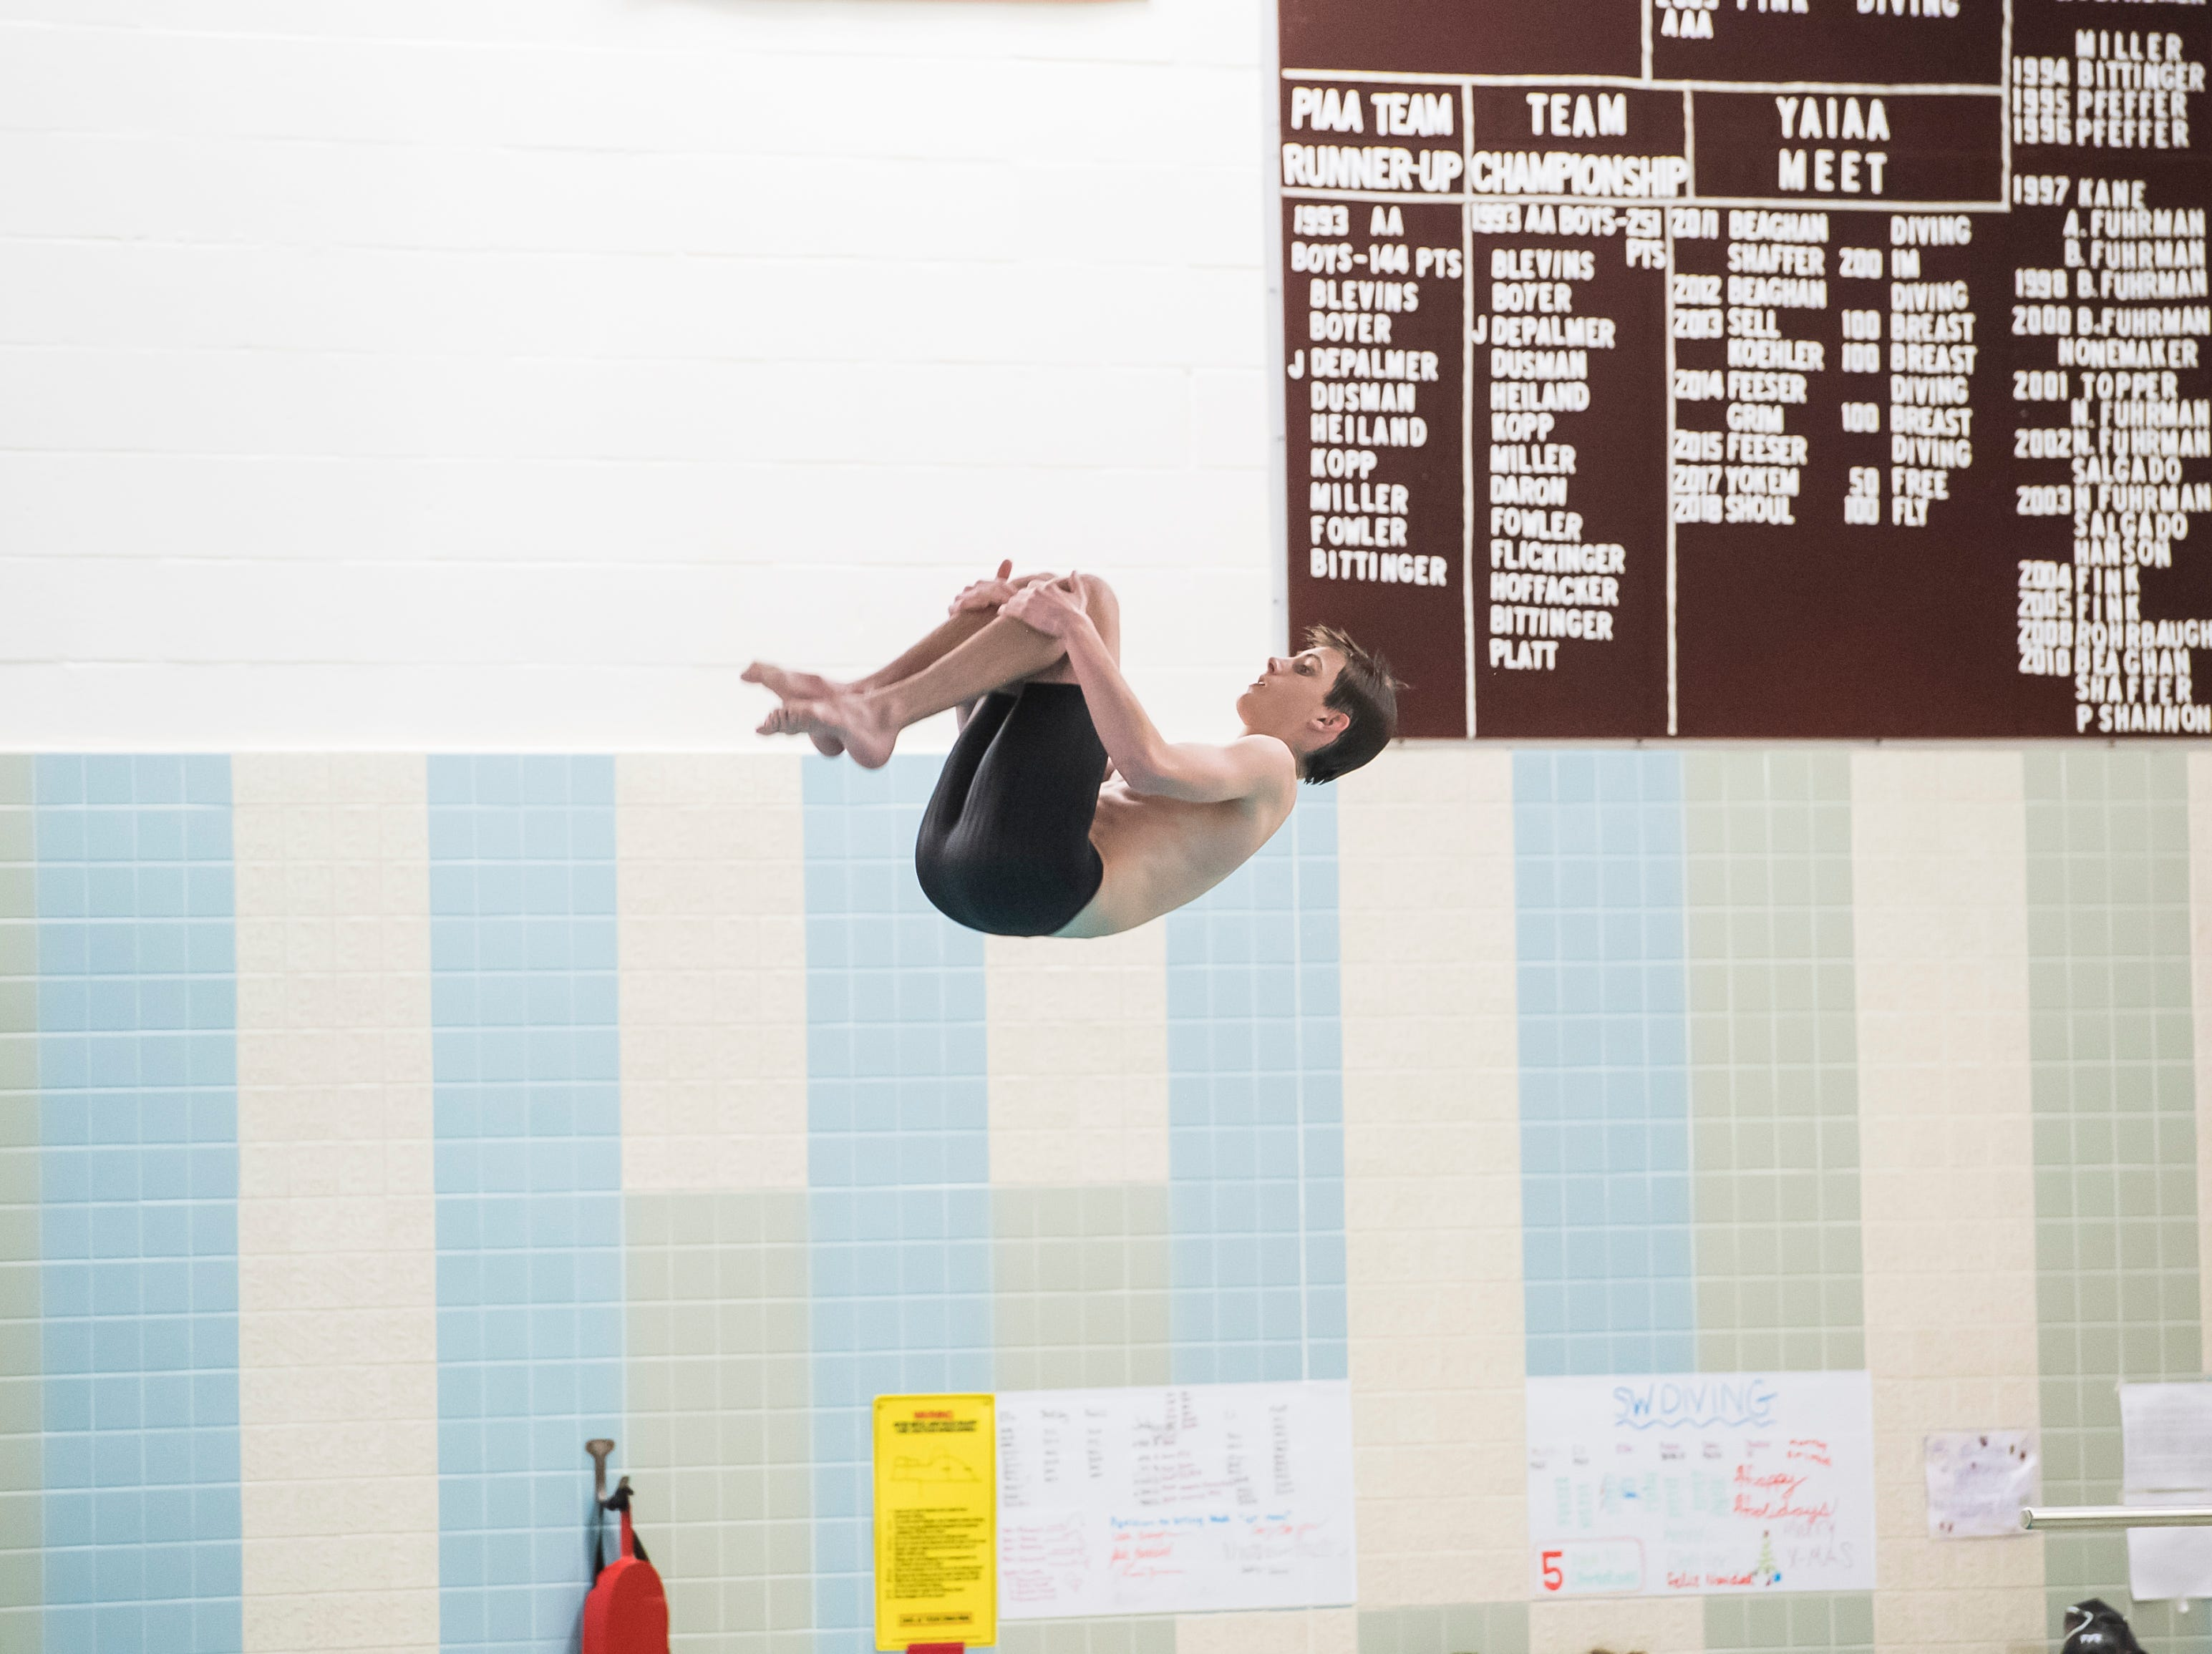 A diver competes during a meet between Gettysburg and South Western at Emory H. Markle Intermediate School on December 20, 2018.